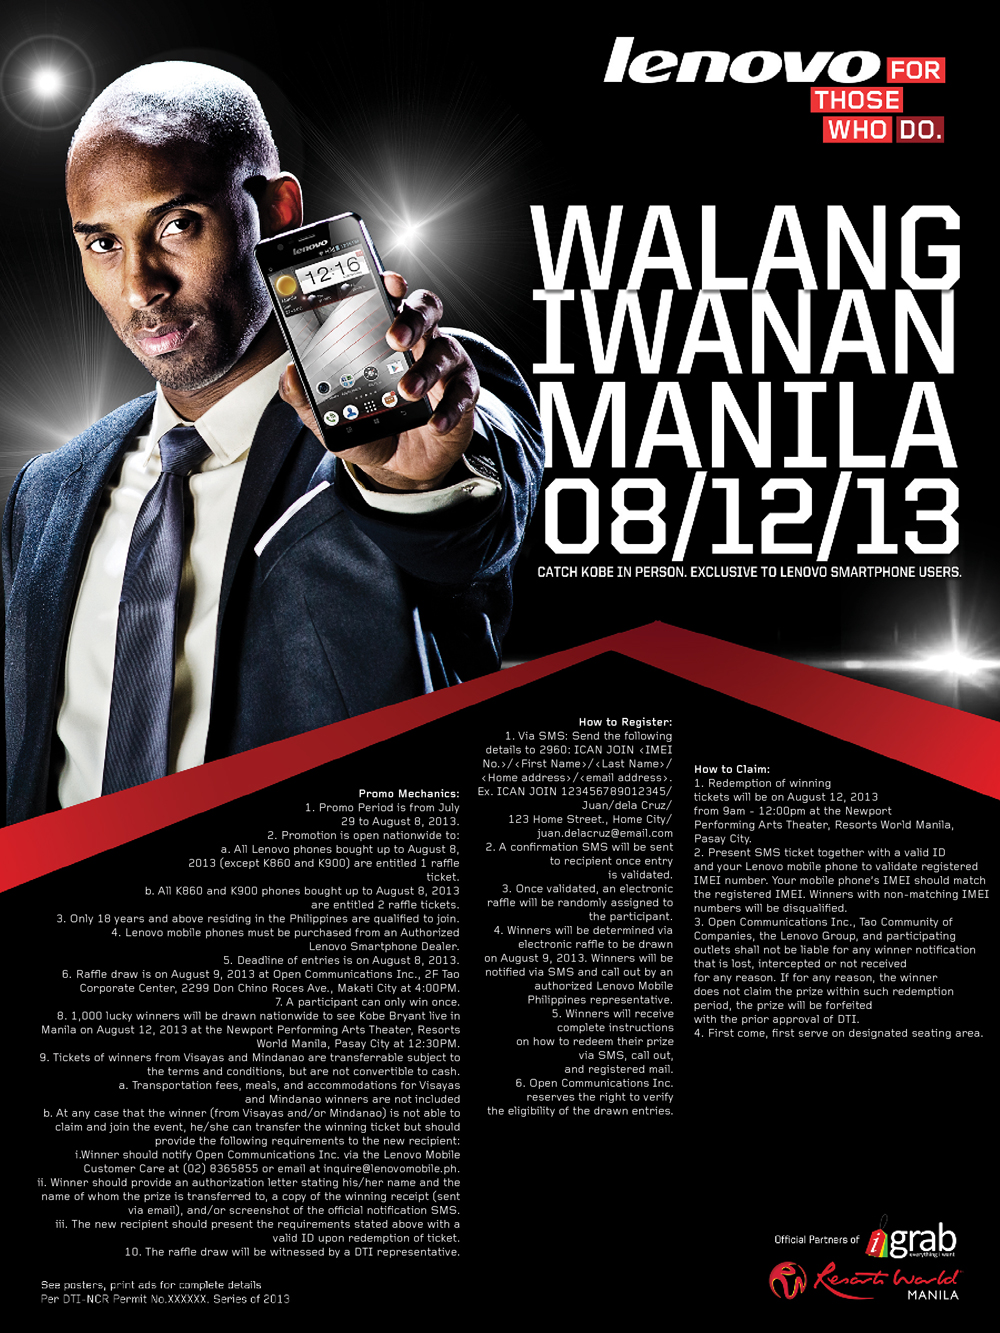 Lenovo Mobile To Thrill Manila With Kobe Bryant